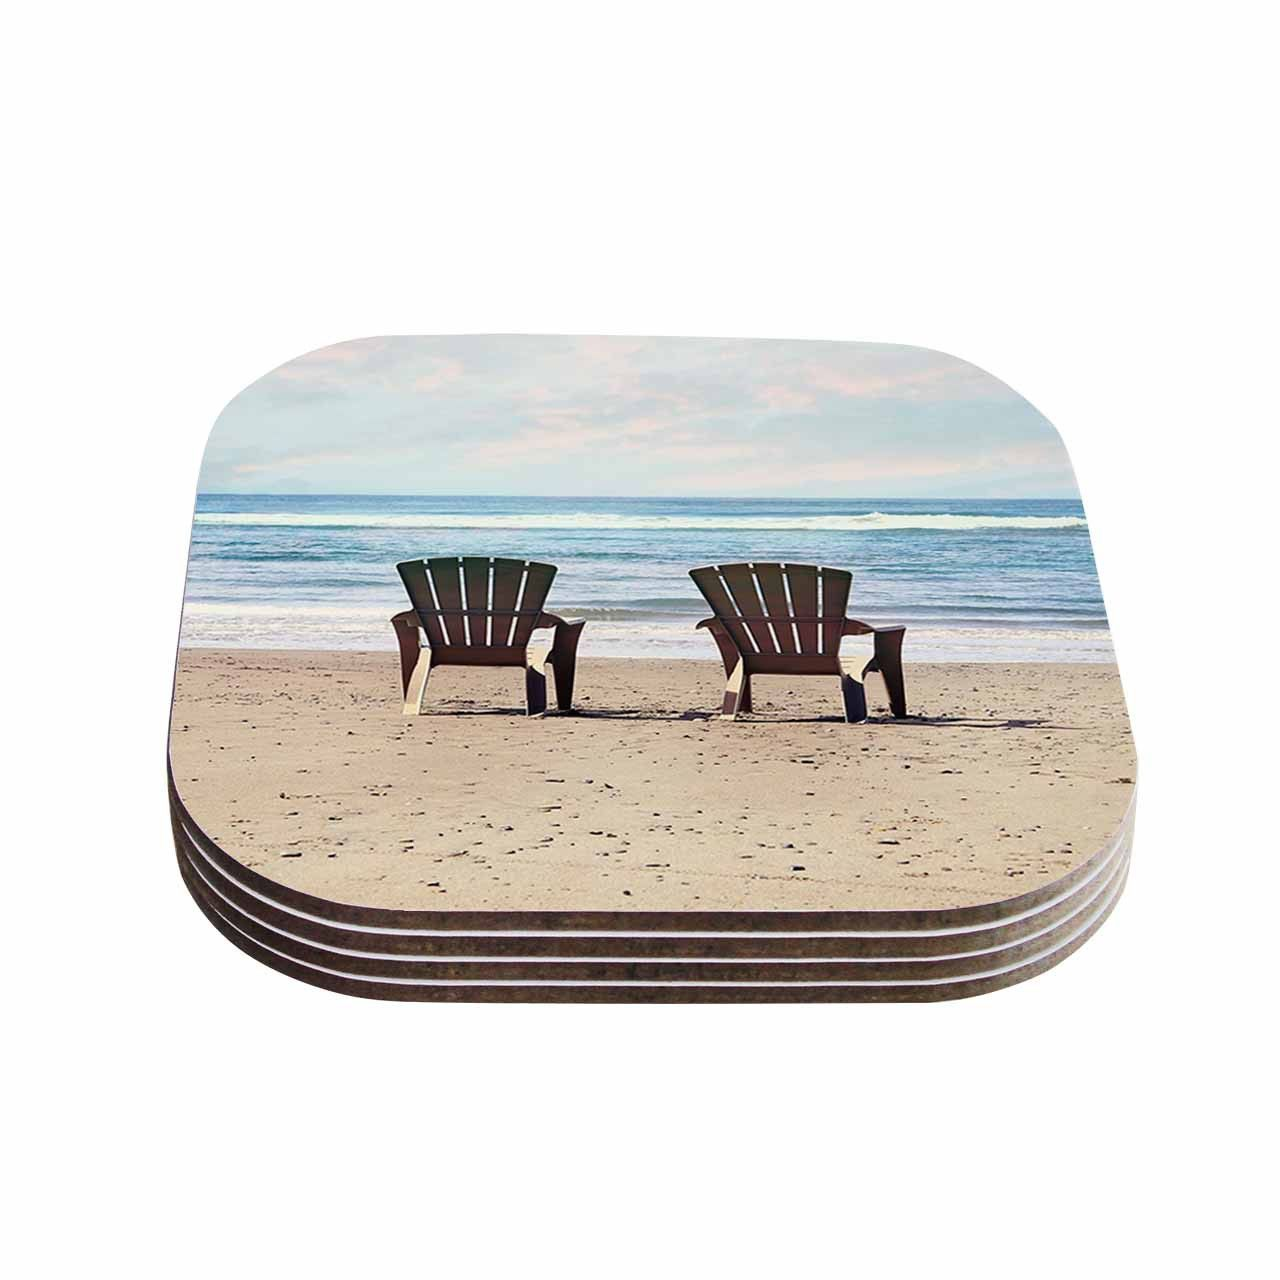 "Sylvia Cook ""A Great View"" Blue Travel Coasters (Set of 4)"